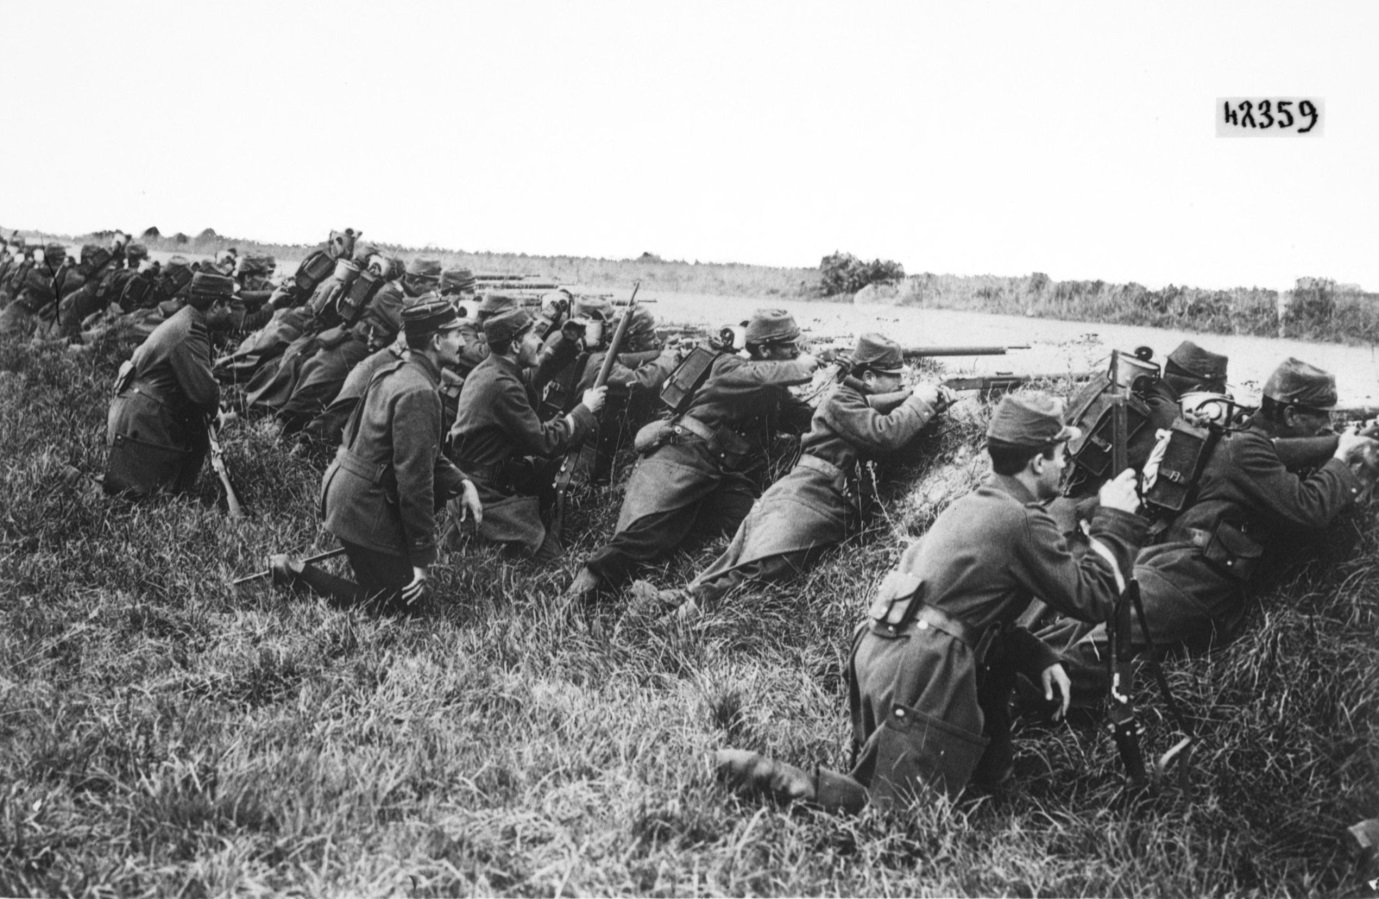 Figure 4: French troops firing from a ditch in 1914, before the front line became entrenched and movement almost impossible. Reference: Bibliothèque nationale de France, Infanterie française en action [tireurs embusqués derrière un fossé]: Photographie de Presse/Agence Rol.